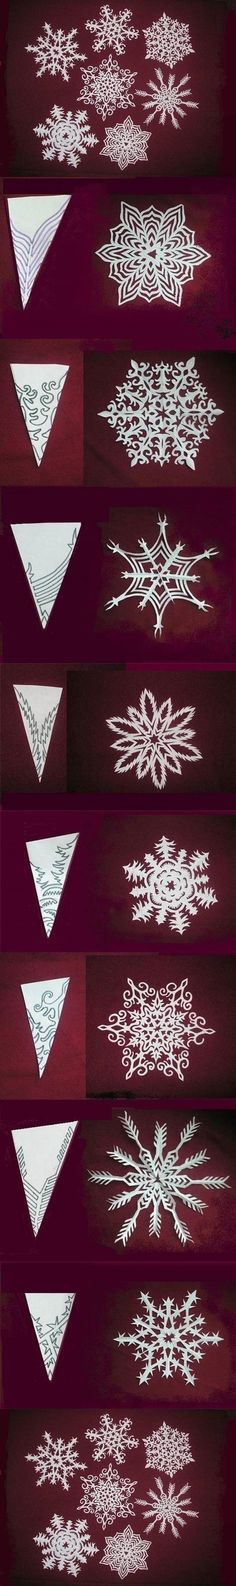 Wonderful DIY Paper Snowflakes With Pattern | WonderfulDIY.com: